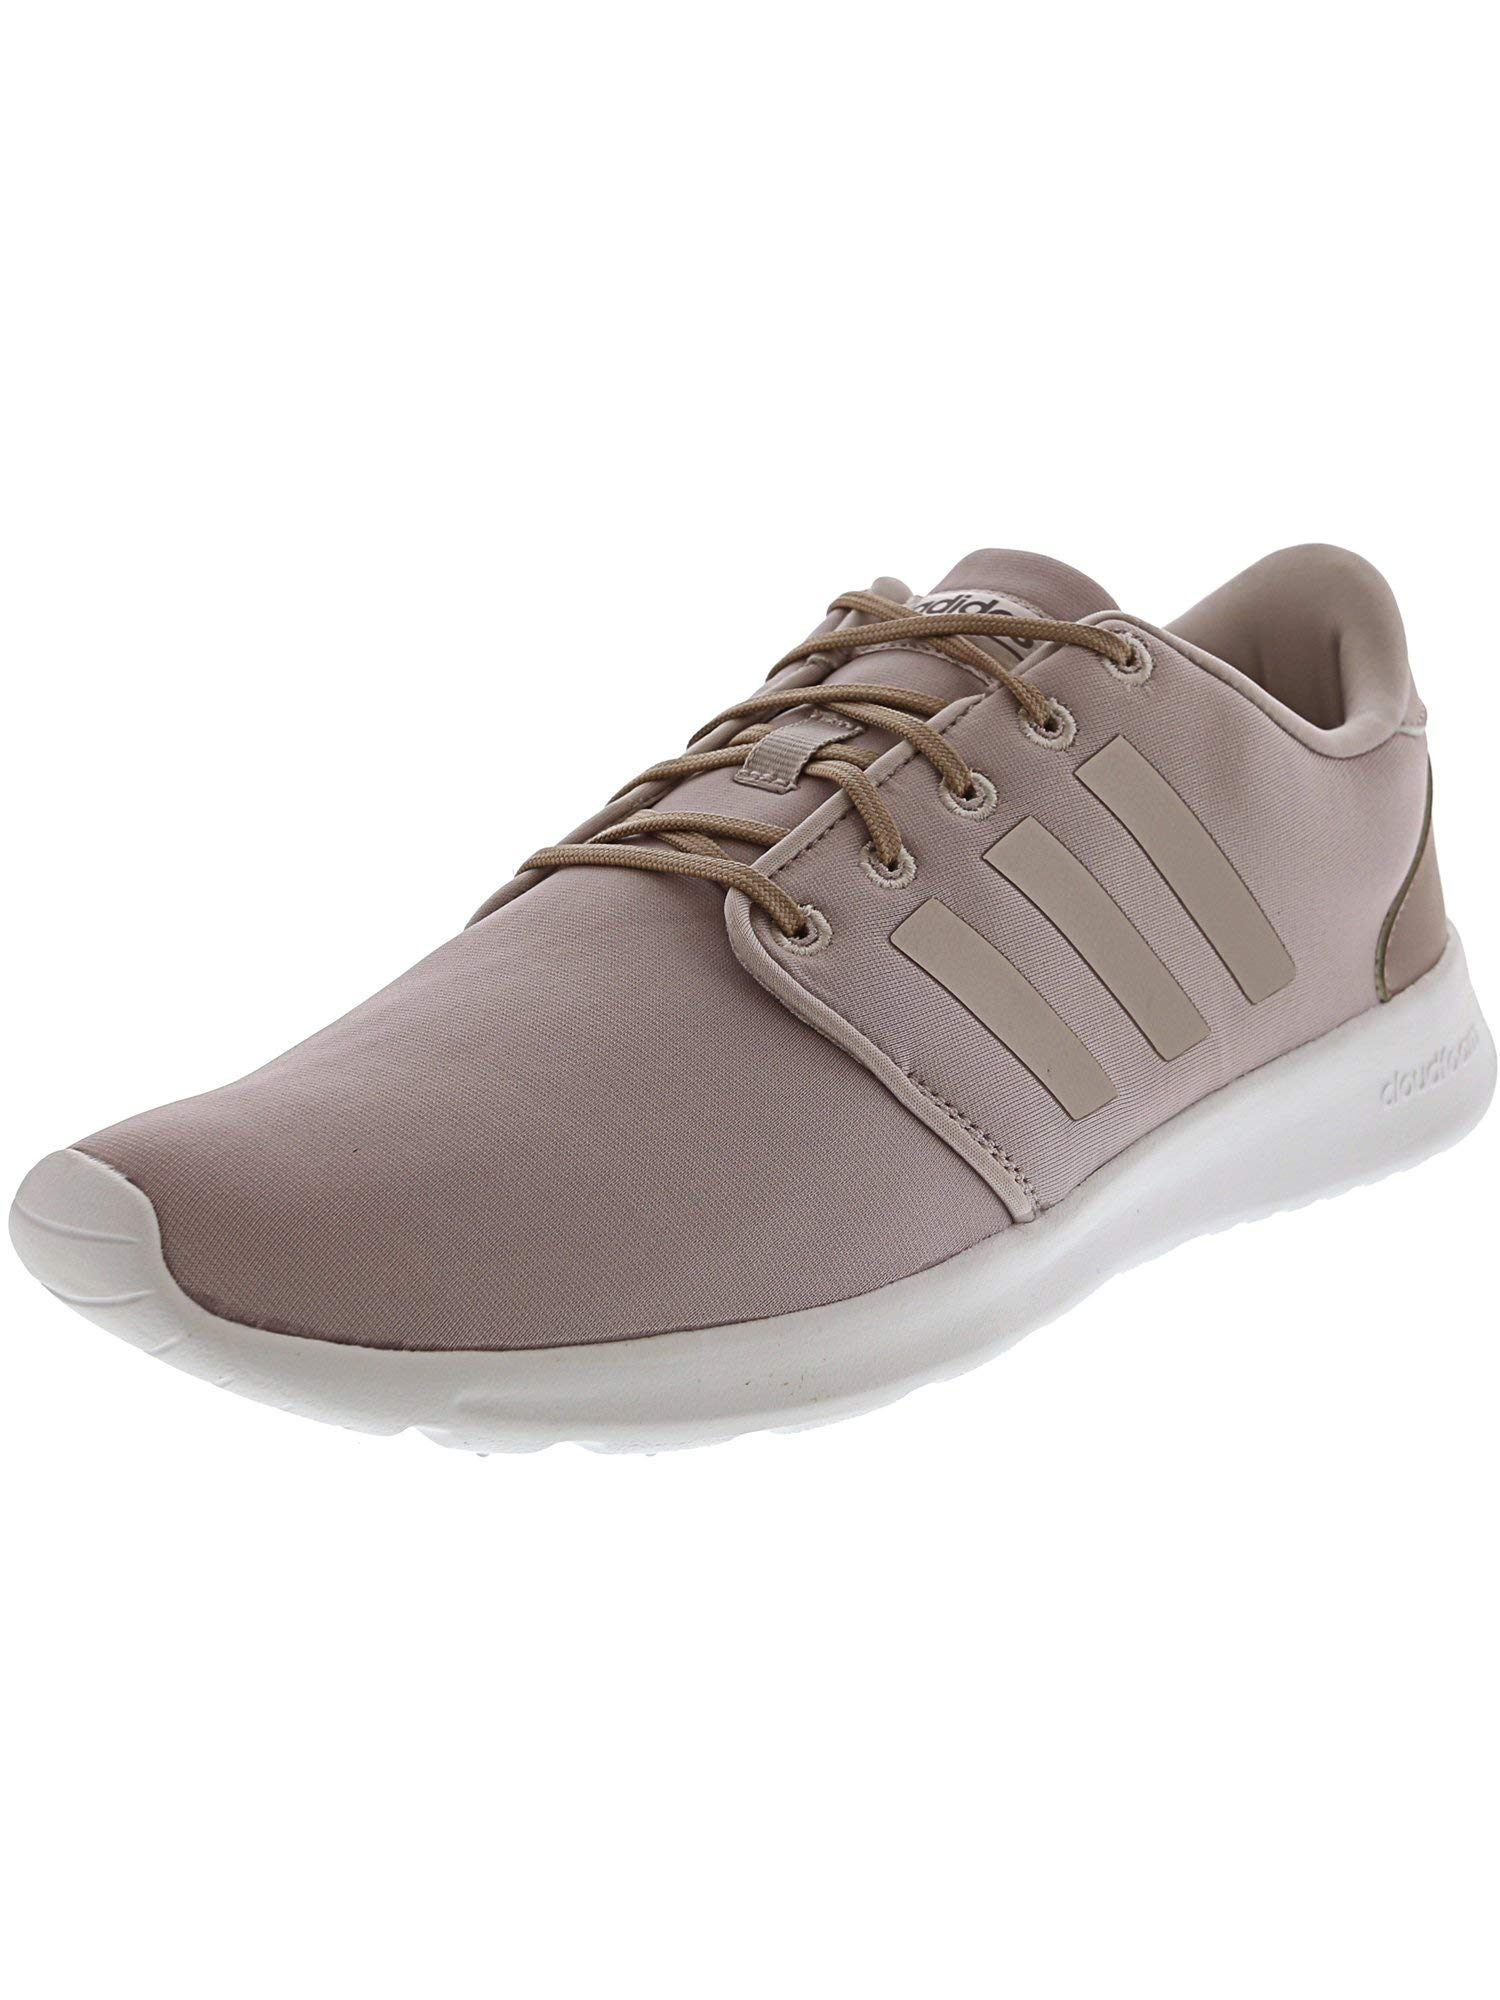 adidas Women's Cloudfoam Qt Racer Ice Purple/Vapor Grey Metallic Ankle-High Running Shoe - 7.5M by adidas